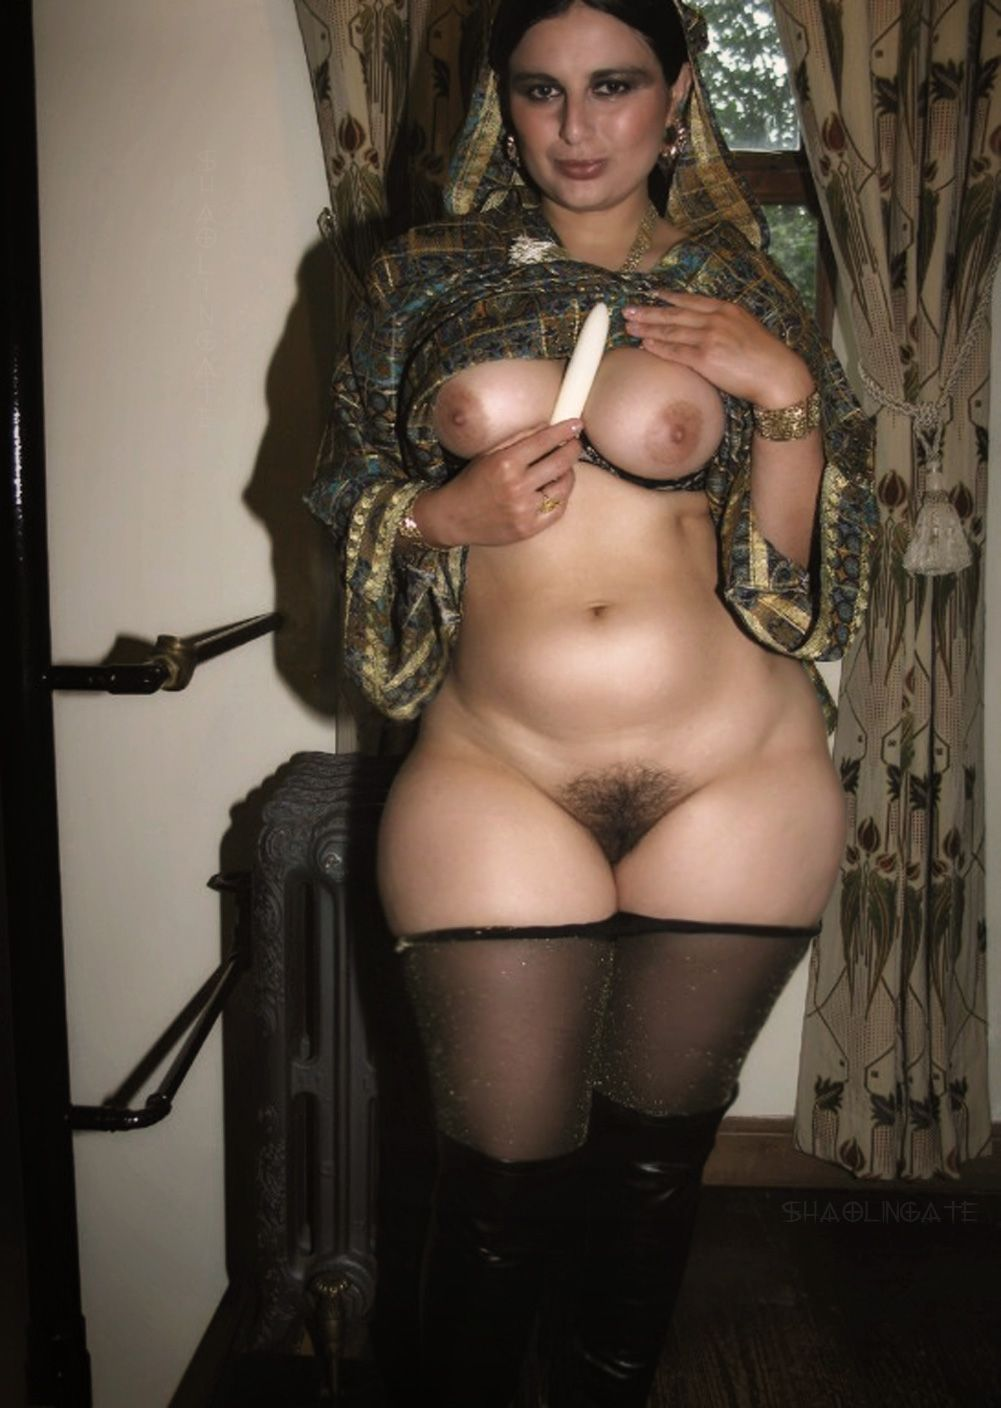 Girl naked hairy pussy with hips